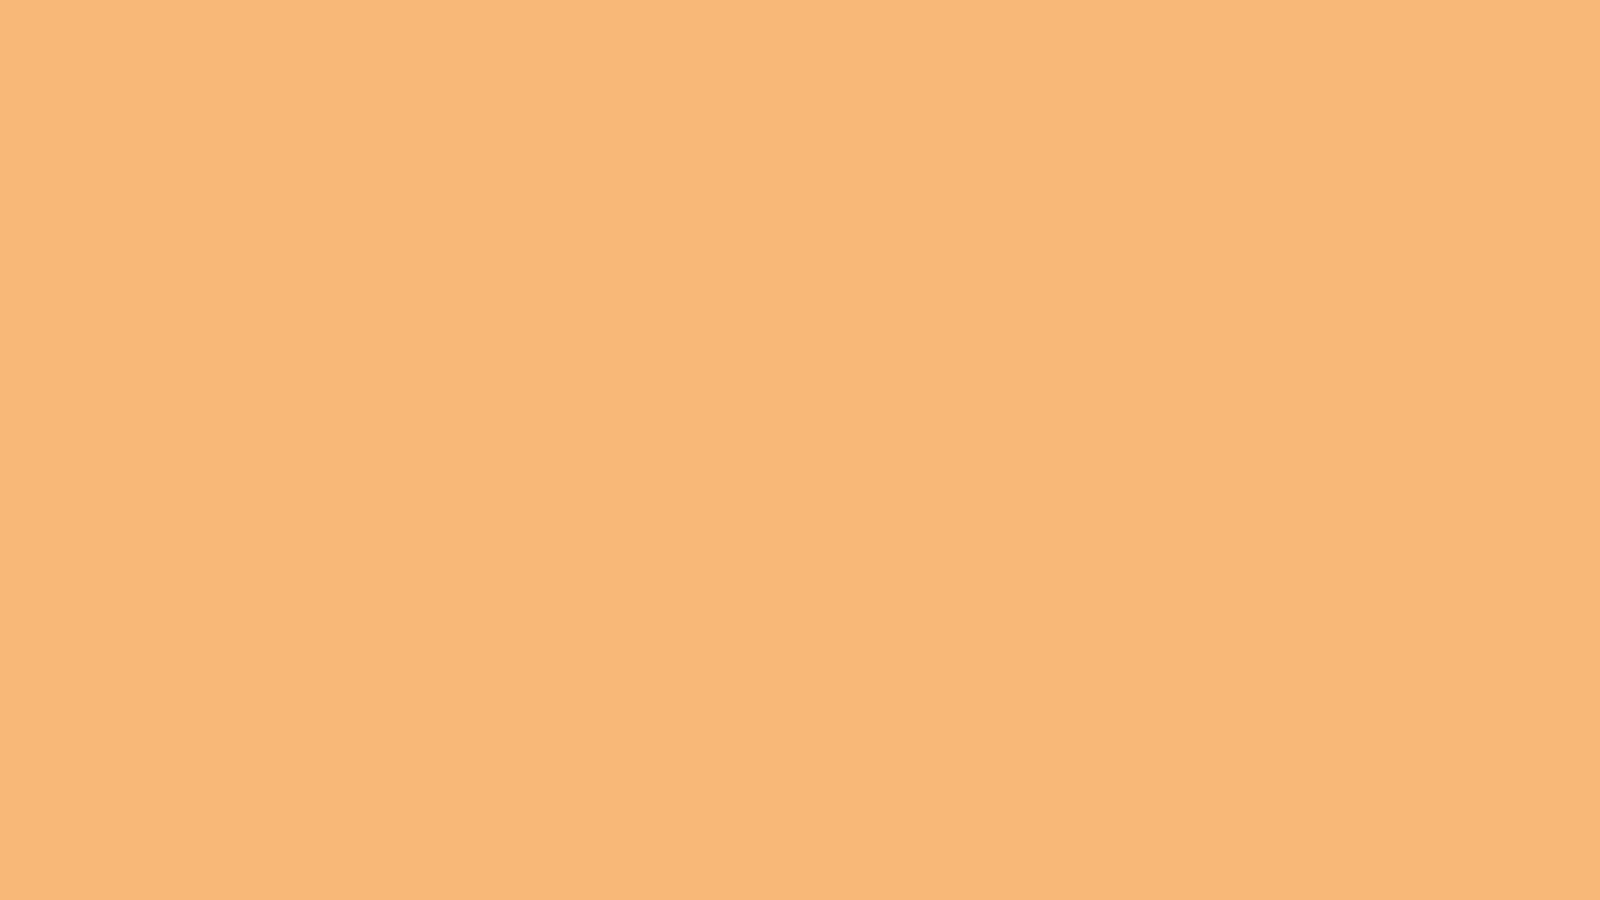 1600x900 Mellow Apricot Solid Color Background